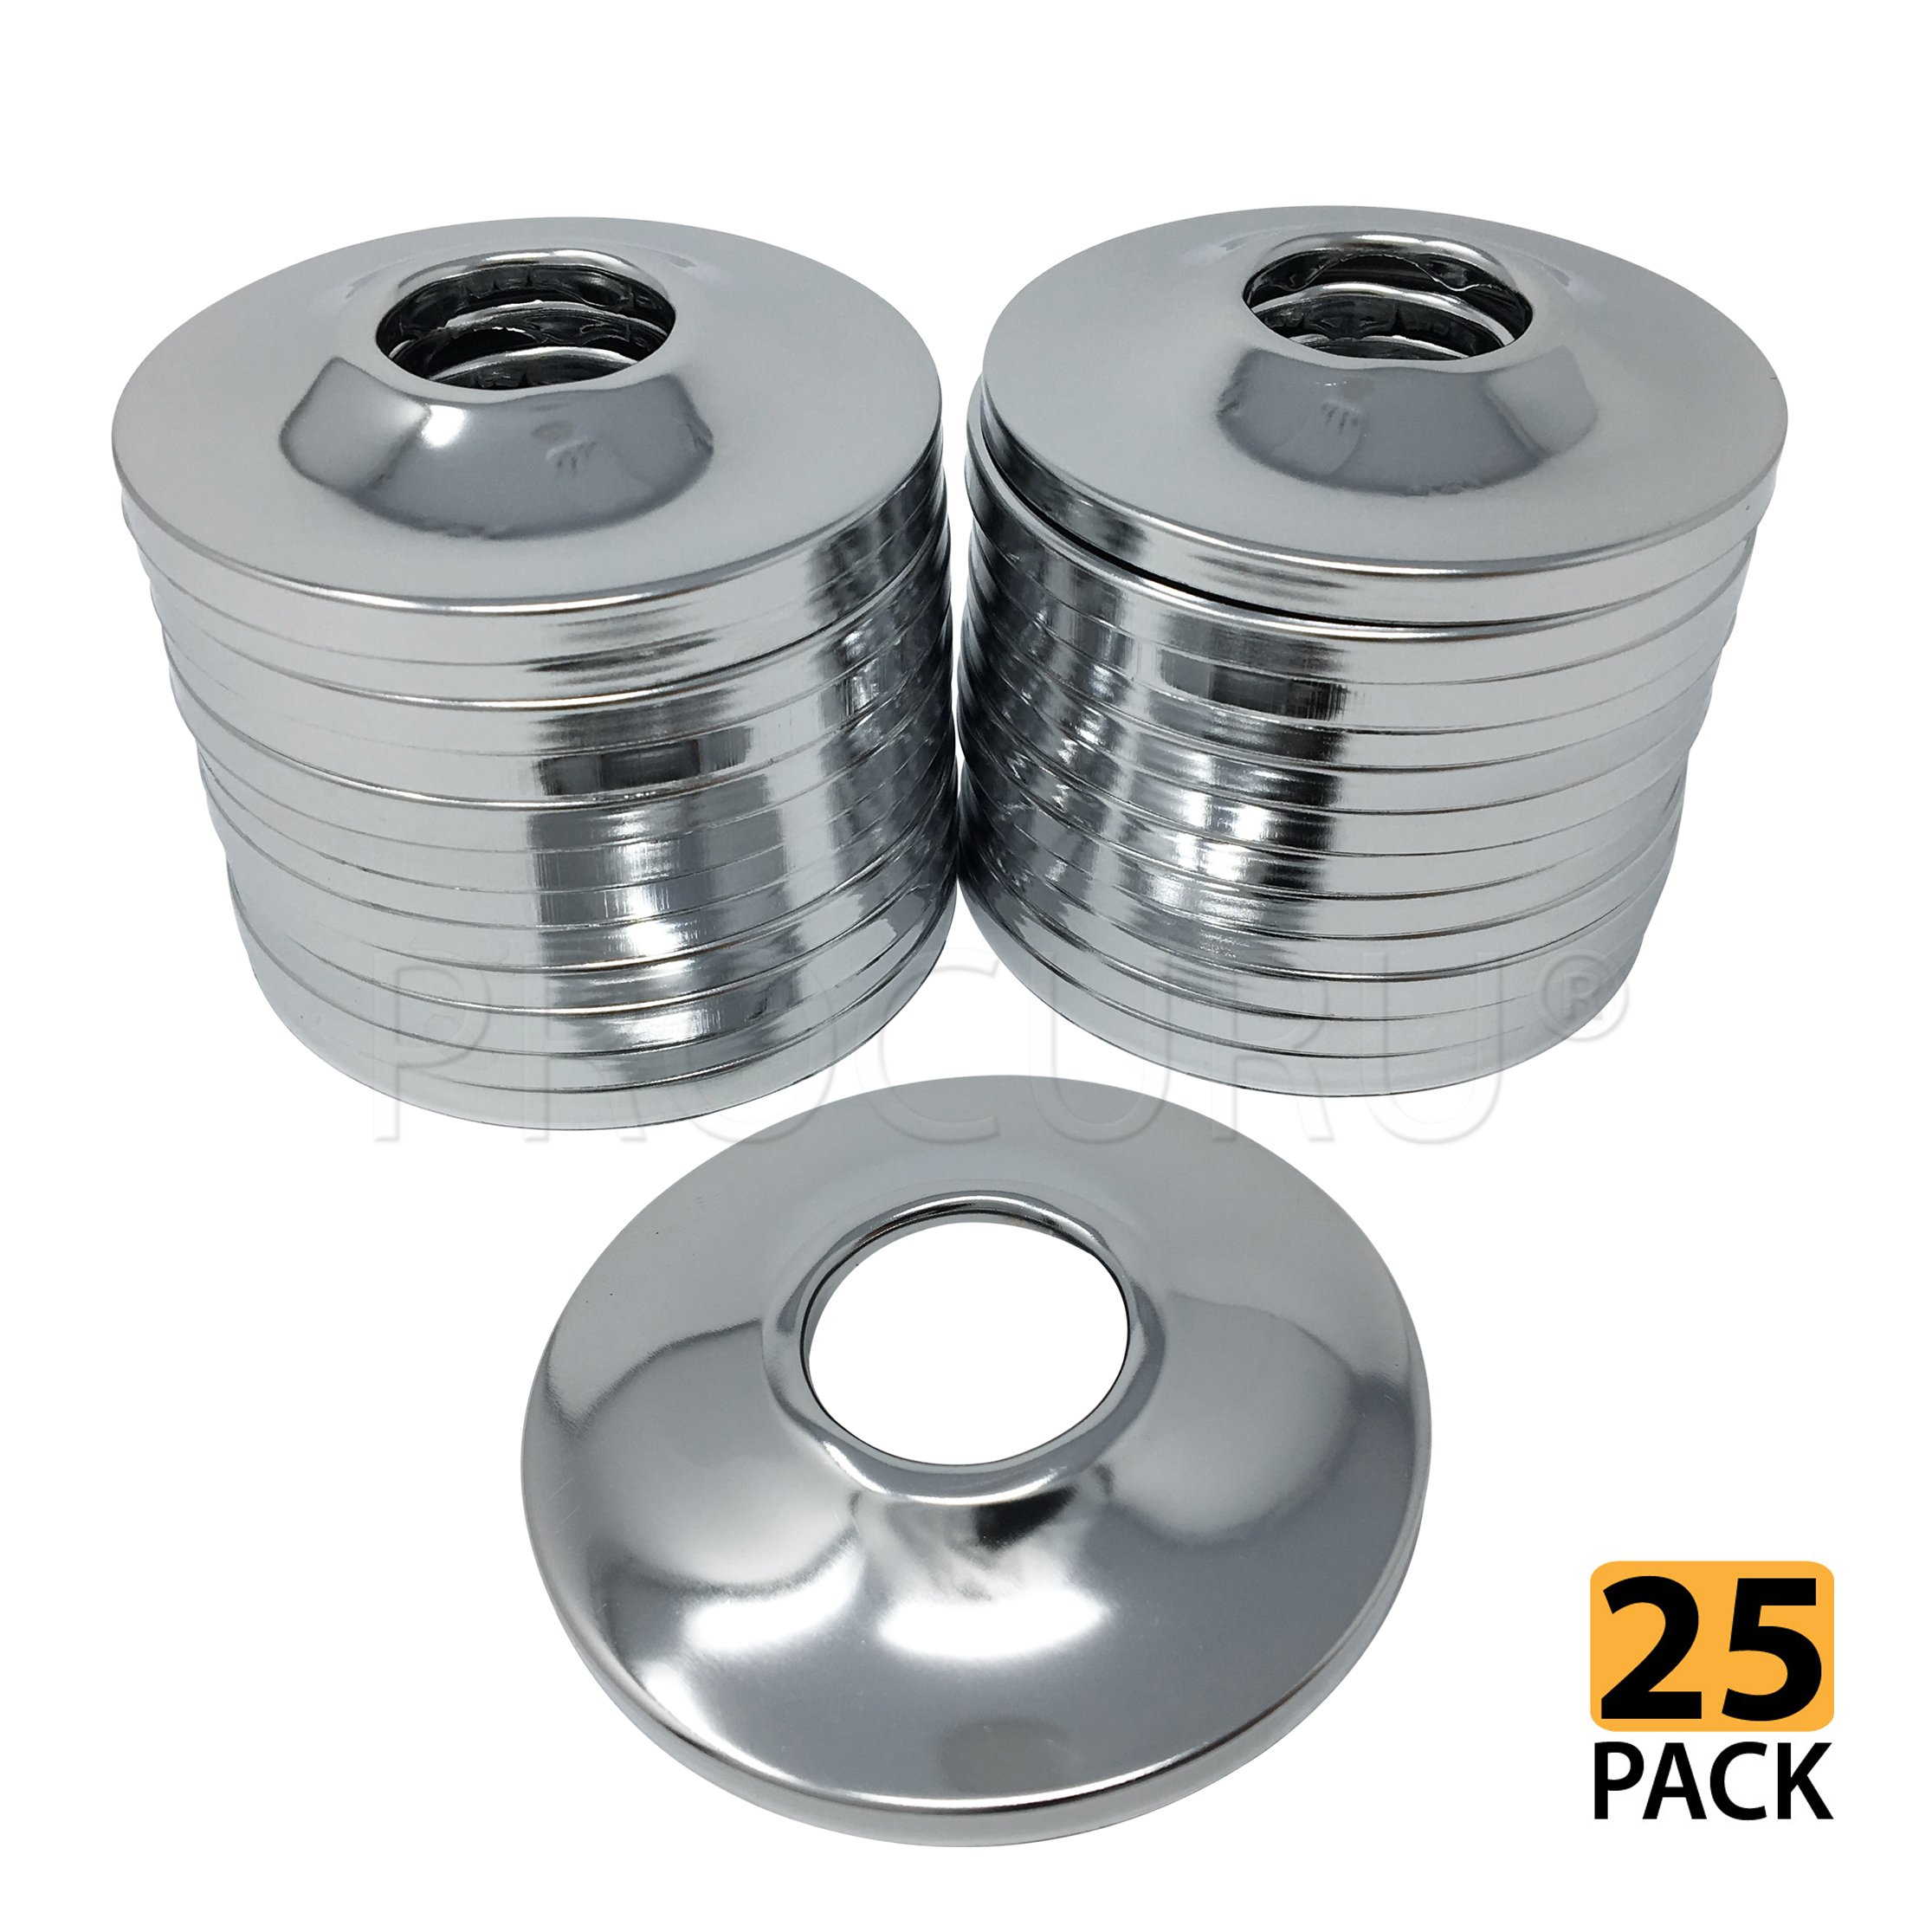 [25-Pack] PROCURU 1/2-Inch CTS Escutcheon Flange Plate Pipe Cover, Chrome-Plated Steel with SureGrip, for 1/2'' Copper Pipe